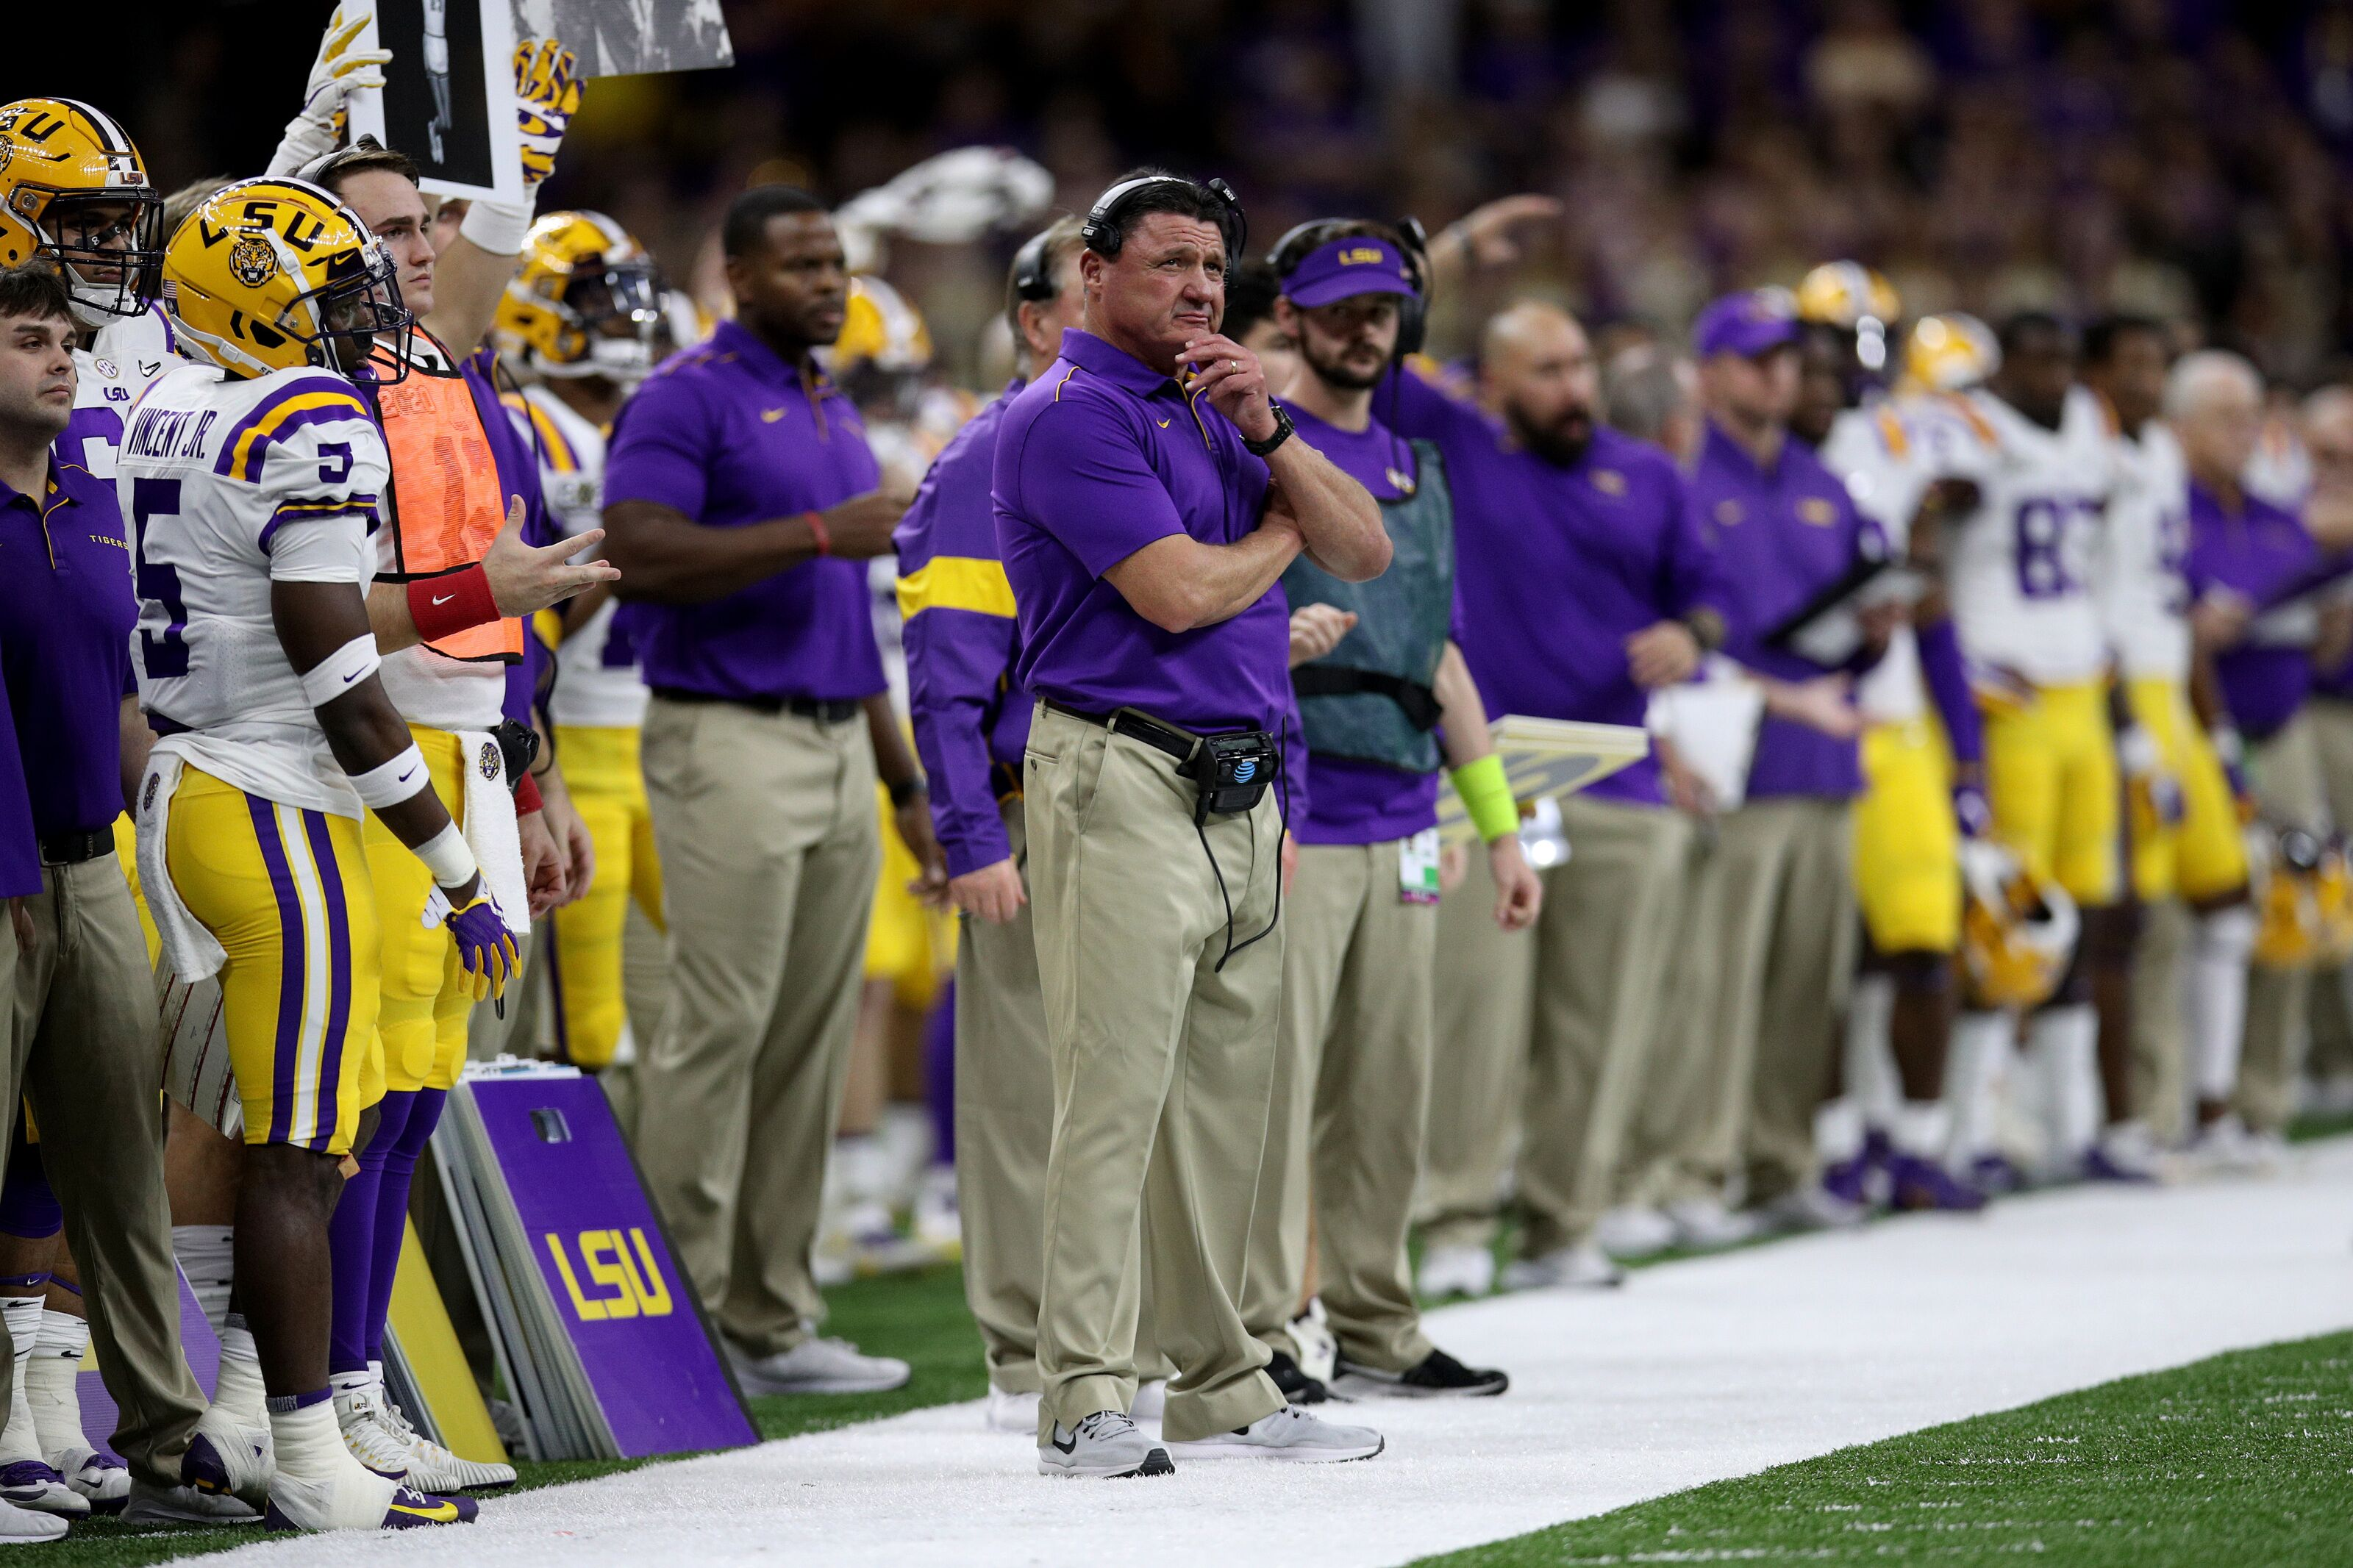 The main reason LSU football will continue to have major recruiting success